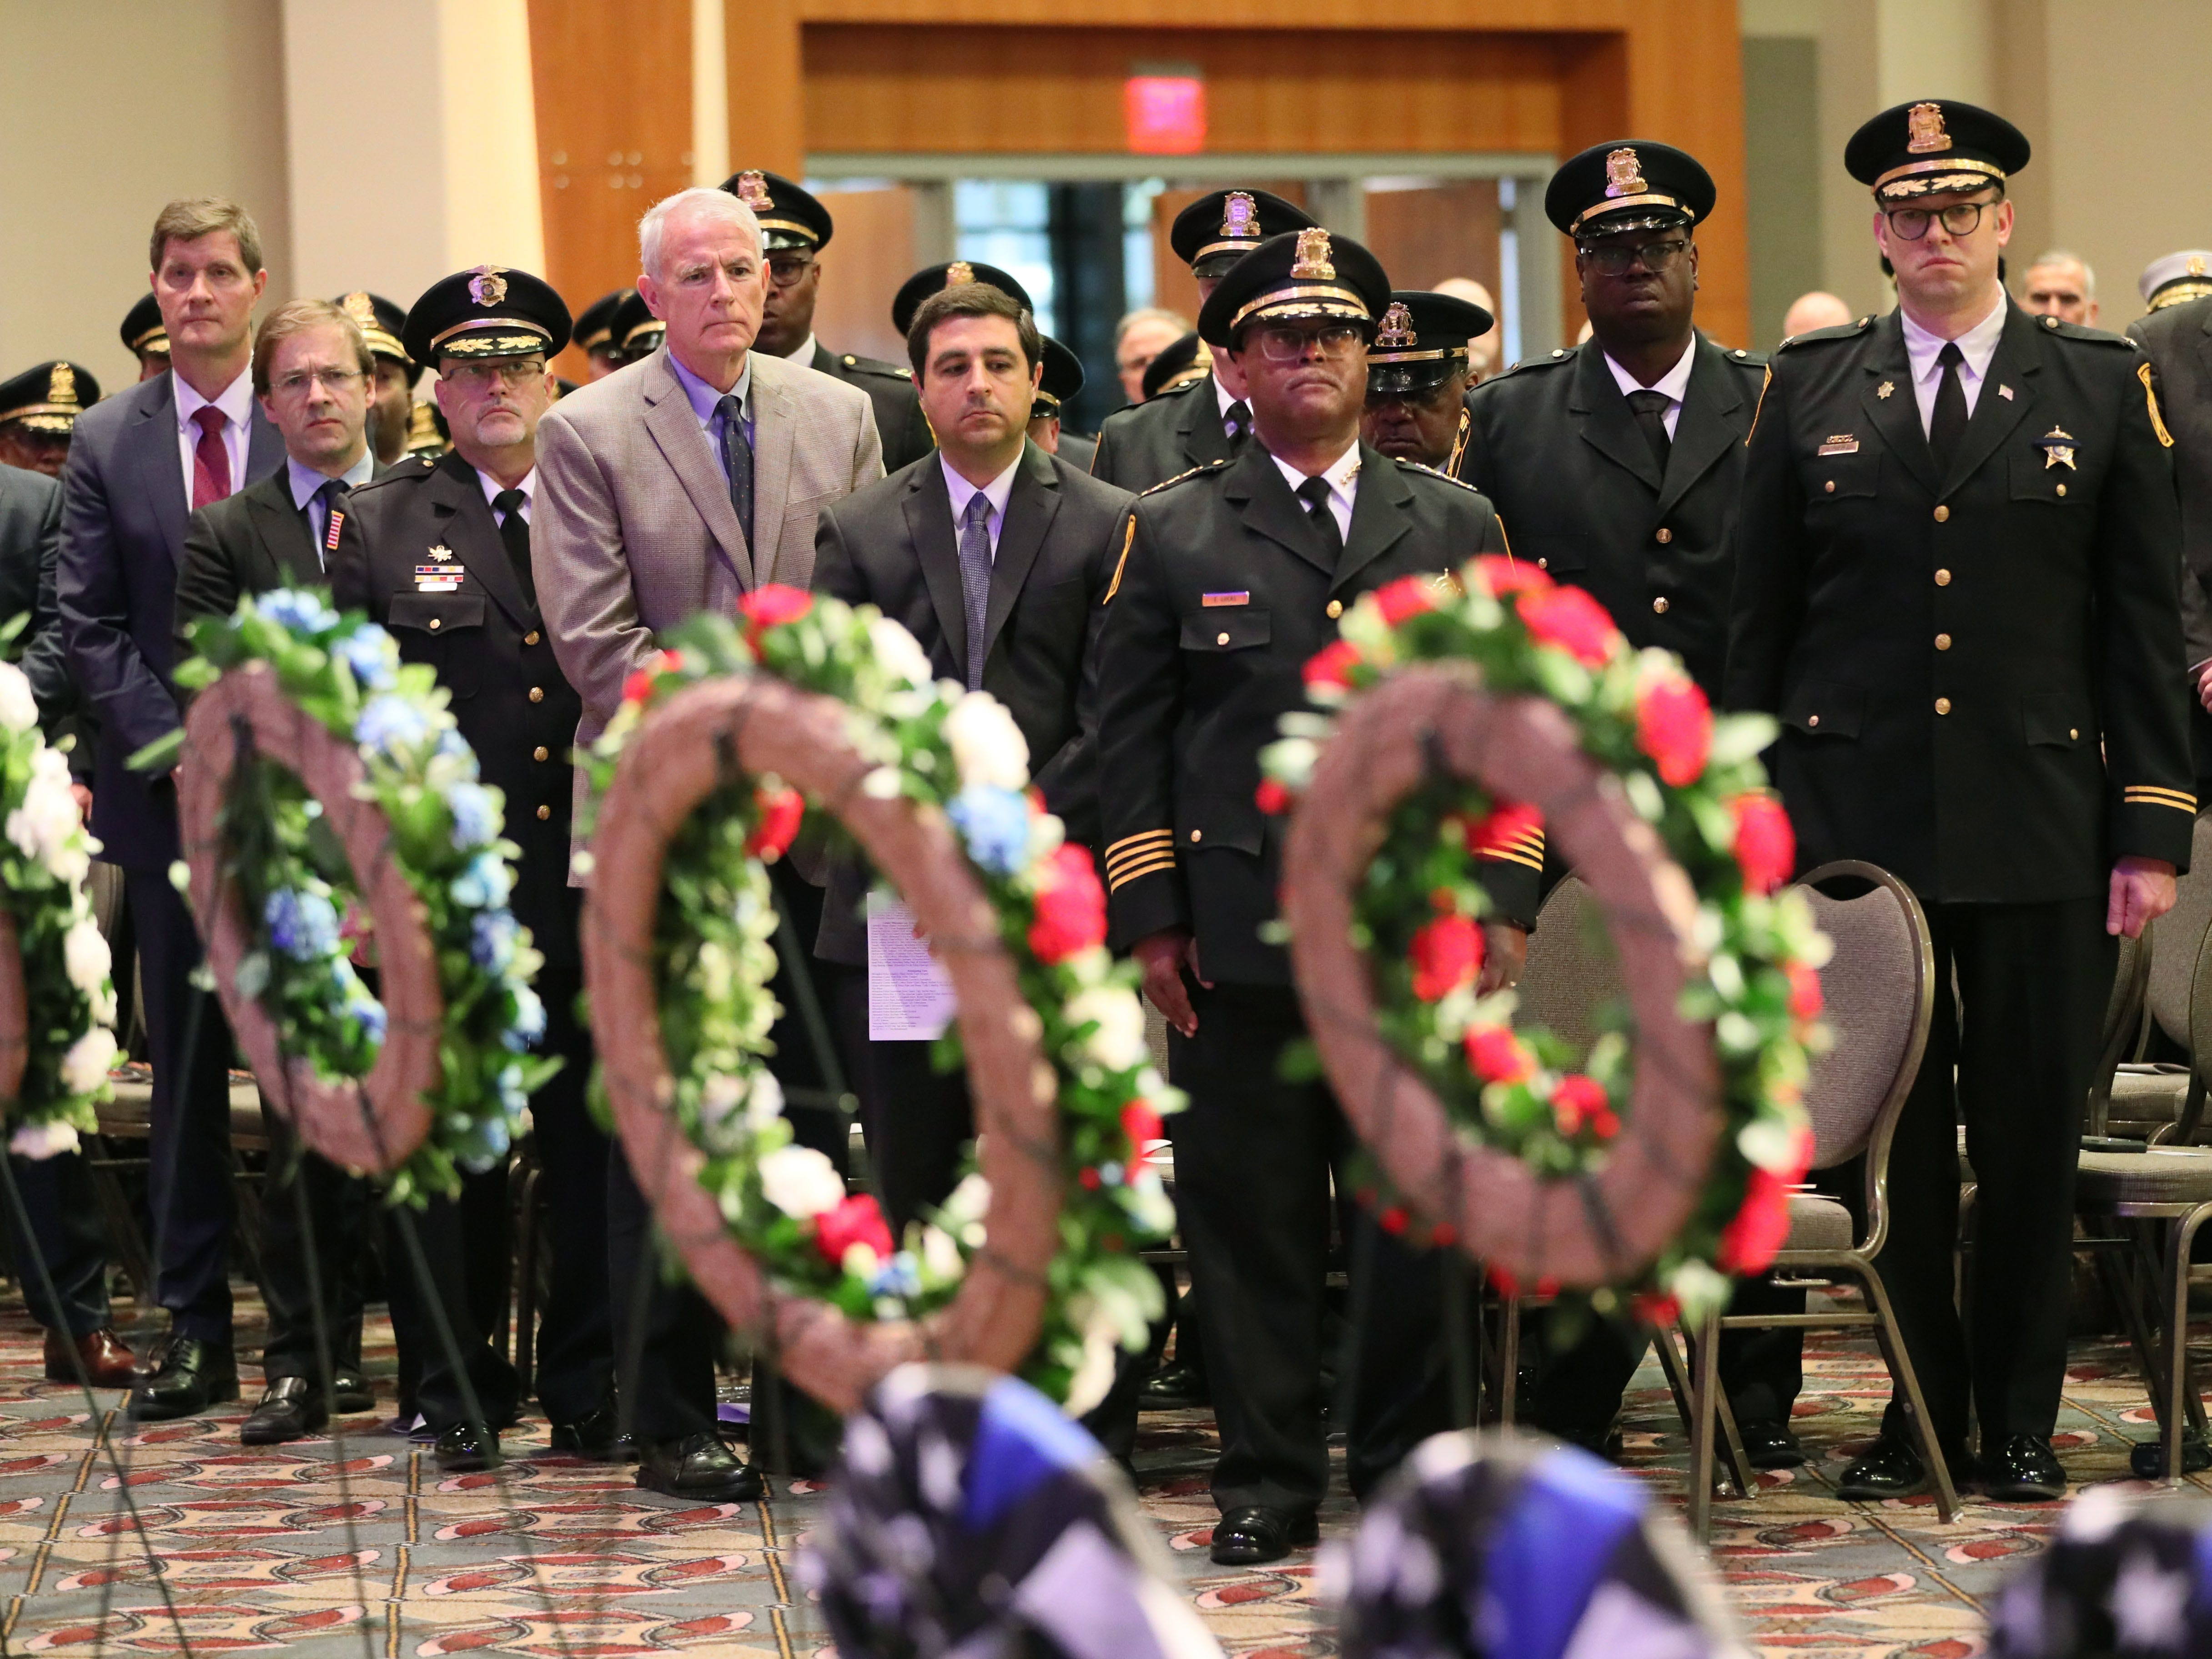 Law enforcement and elected officials stand during the Greater Milwaukee Law Enforcement Memorial Ceremony held at the Wisconsin Center on Wednesday.